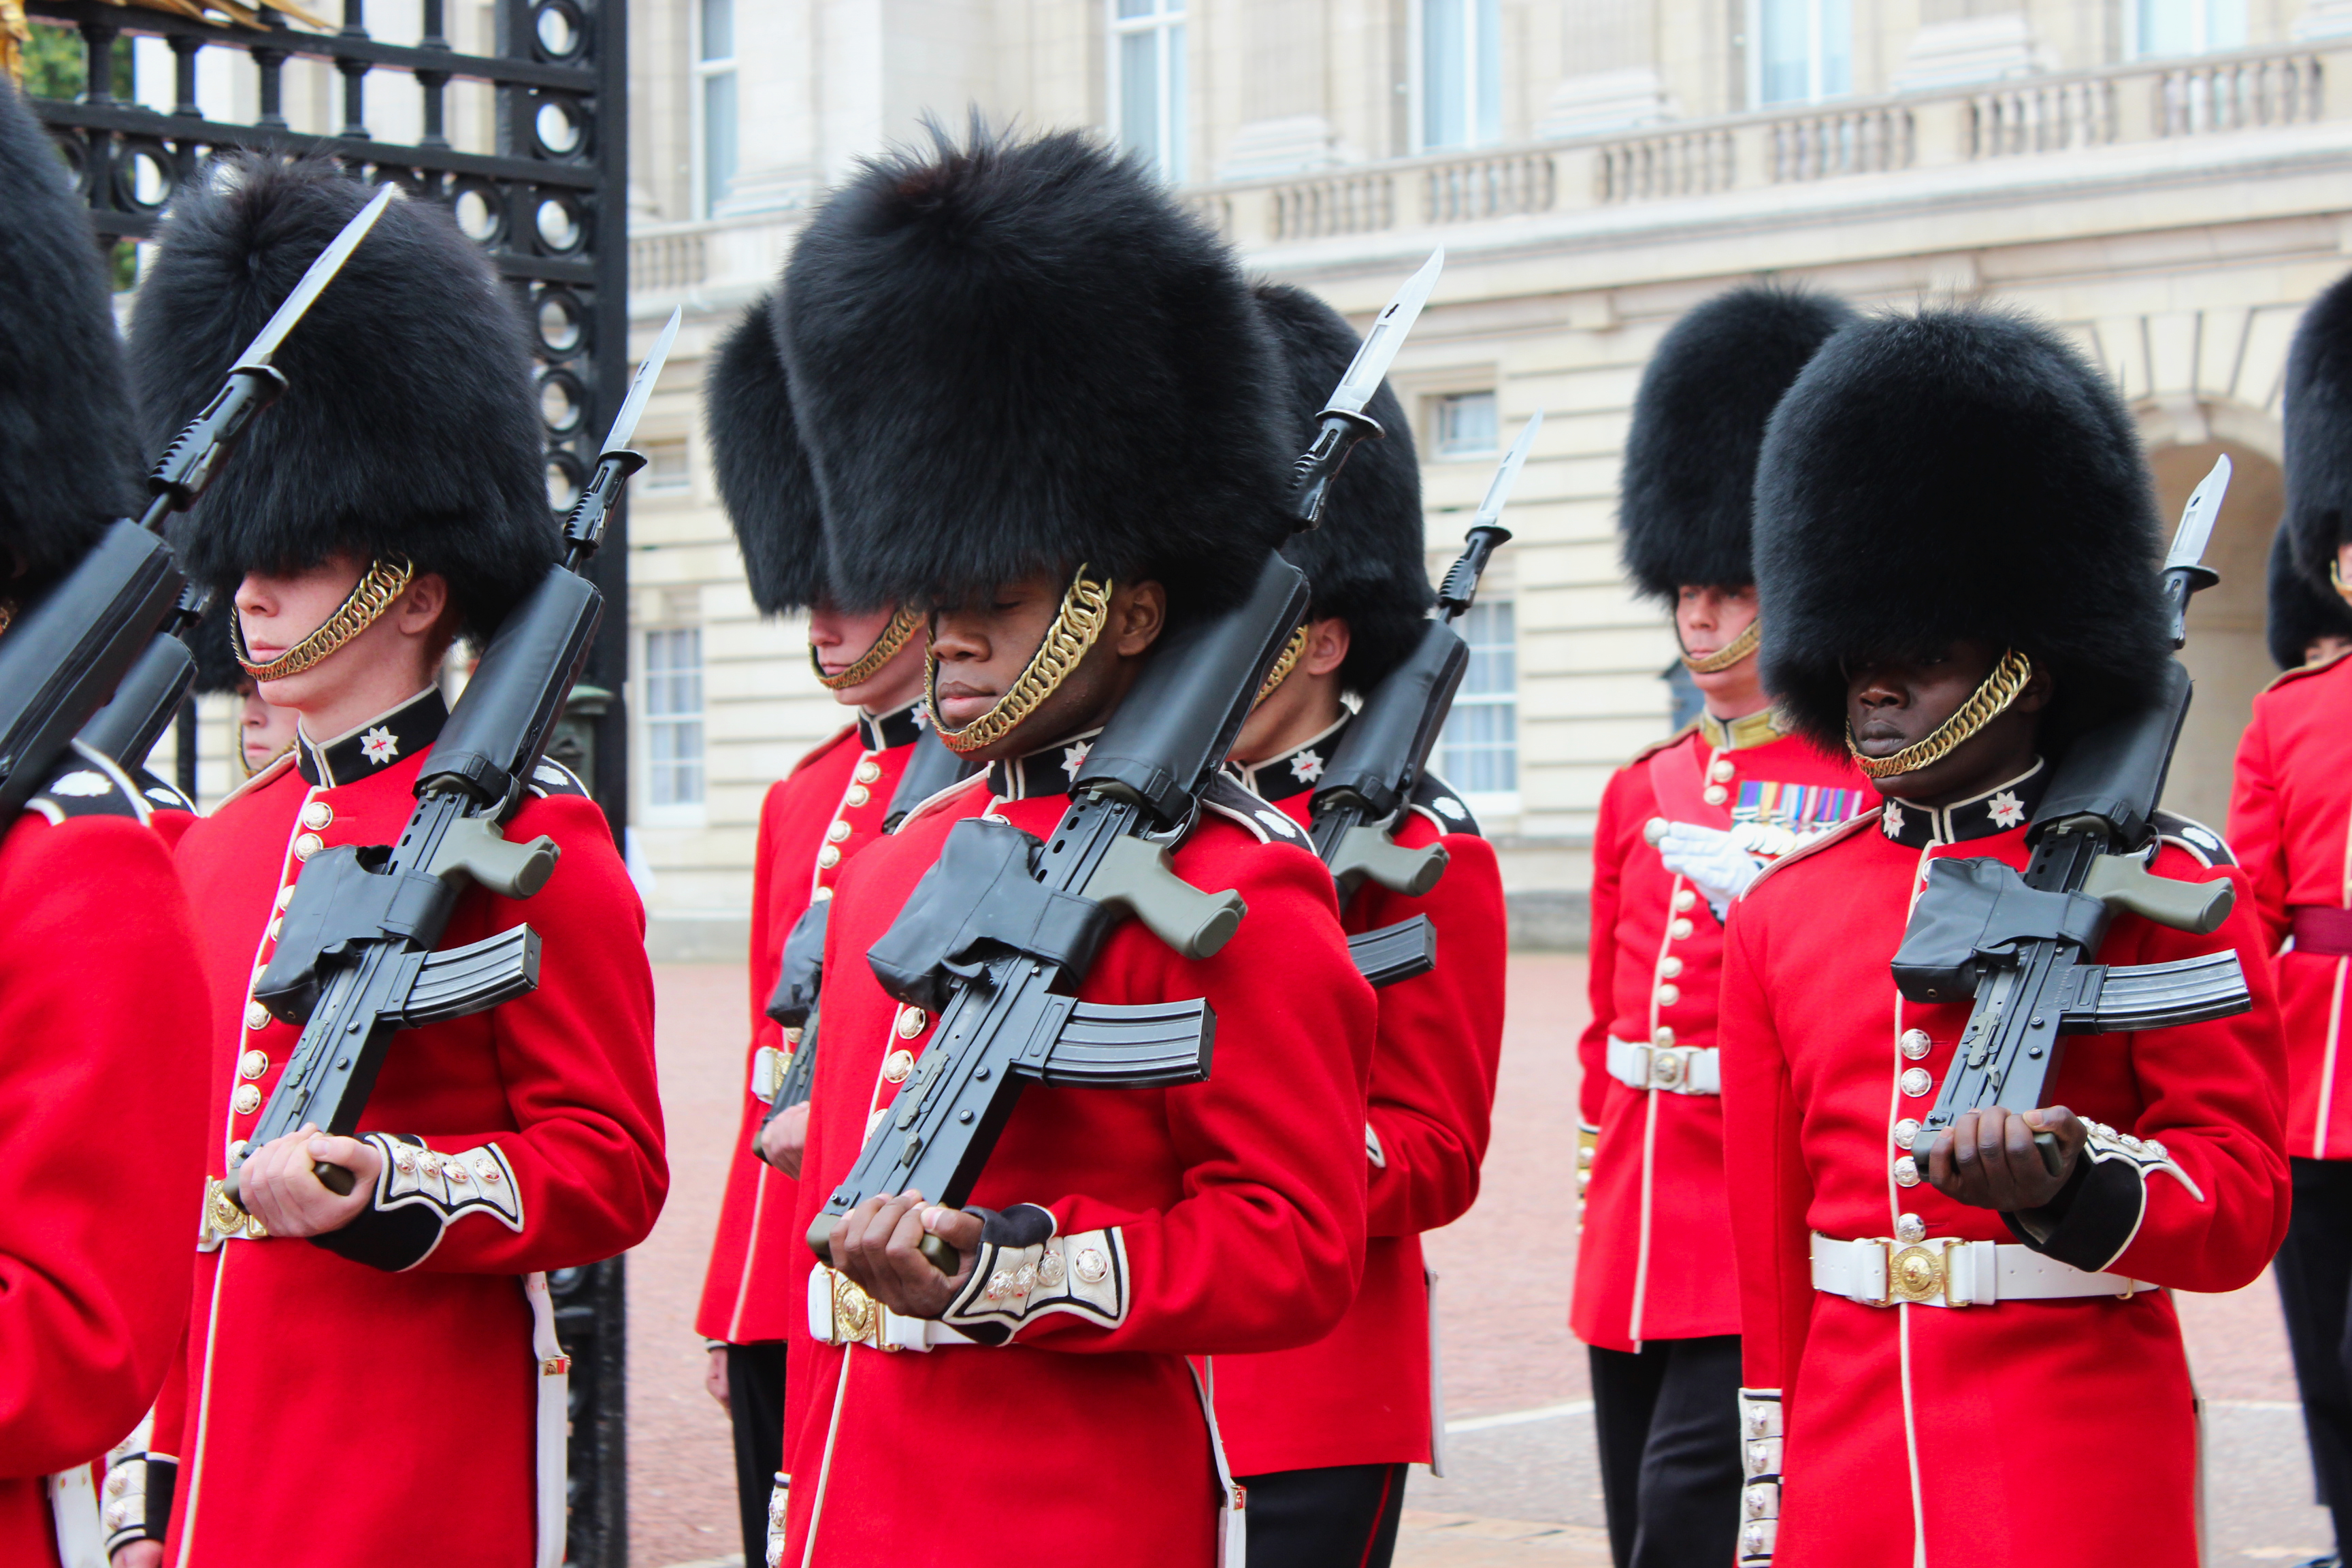 Queen's Guards at Buckingham Palace